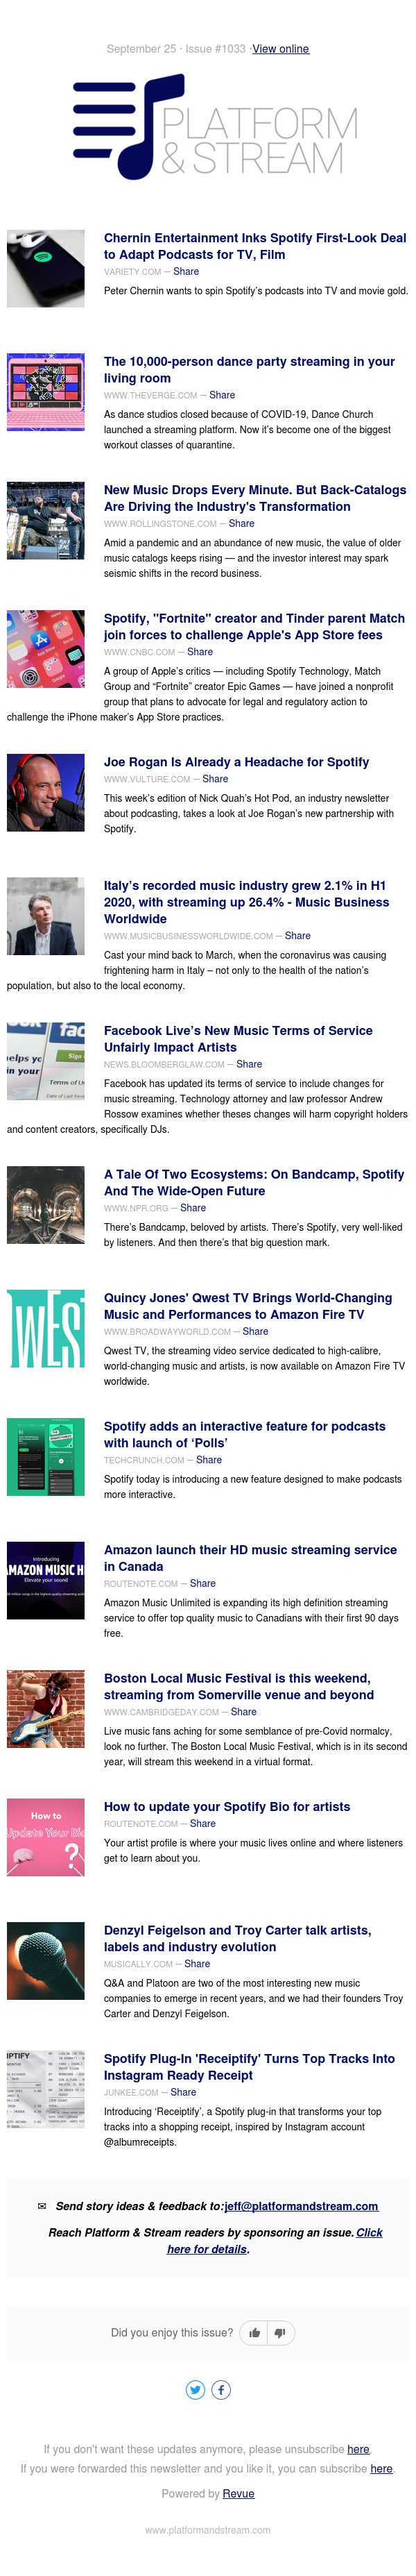 Spotify, Chernin Ink Deal to Adapt Podcasts for TV, Film; Streaming Boosts Italy's Music Biz; Back-Catalogs Driving the Industry's Transformation